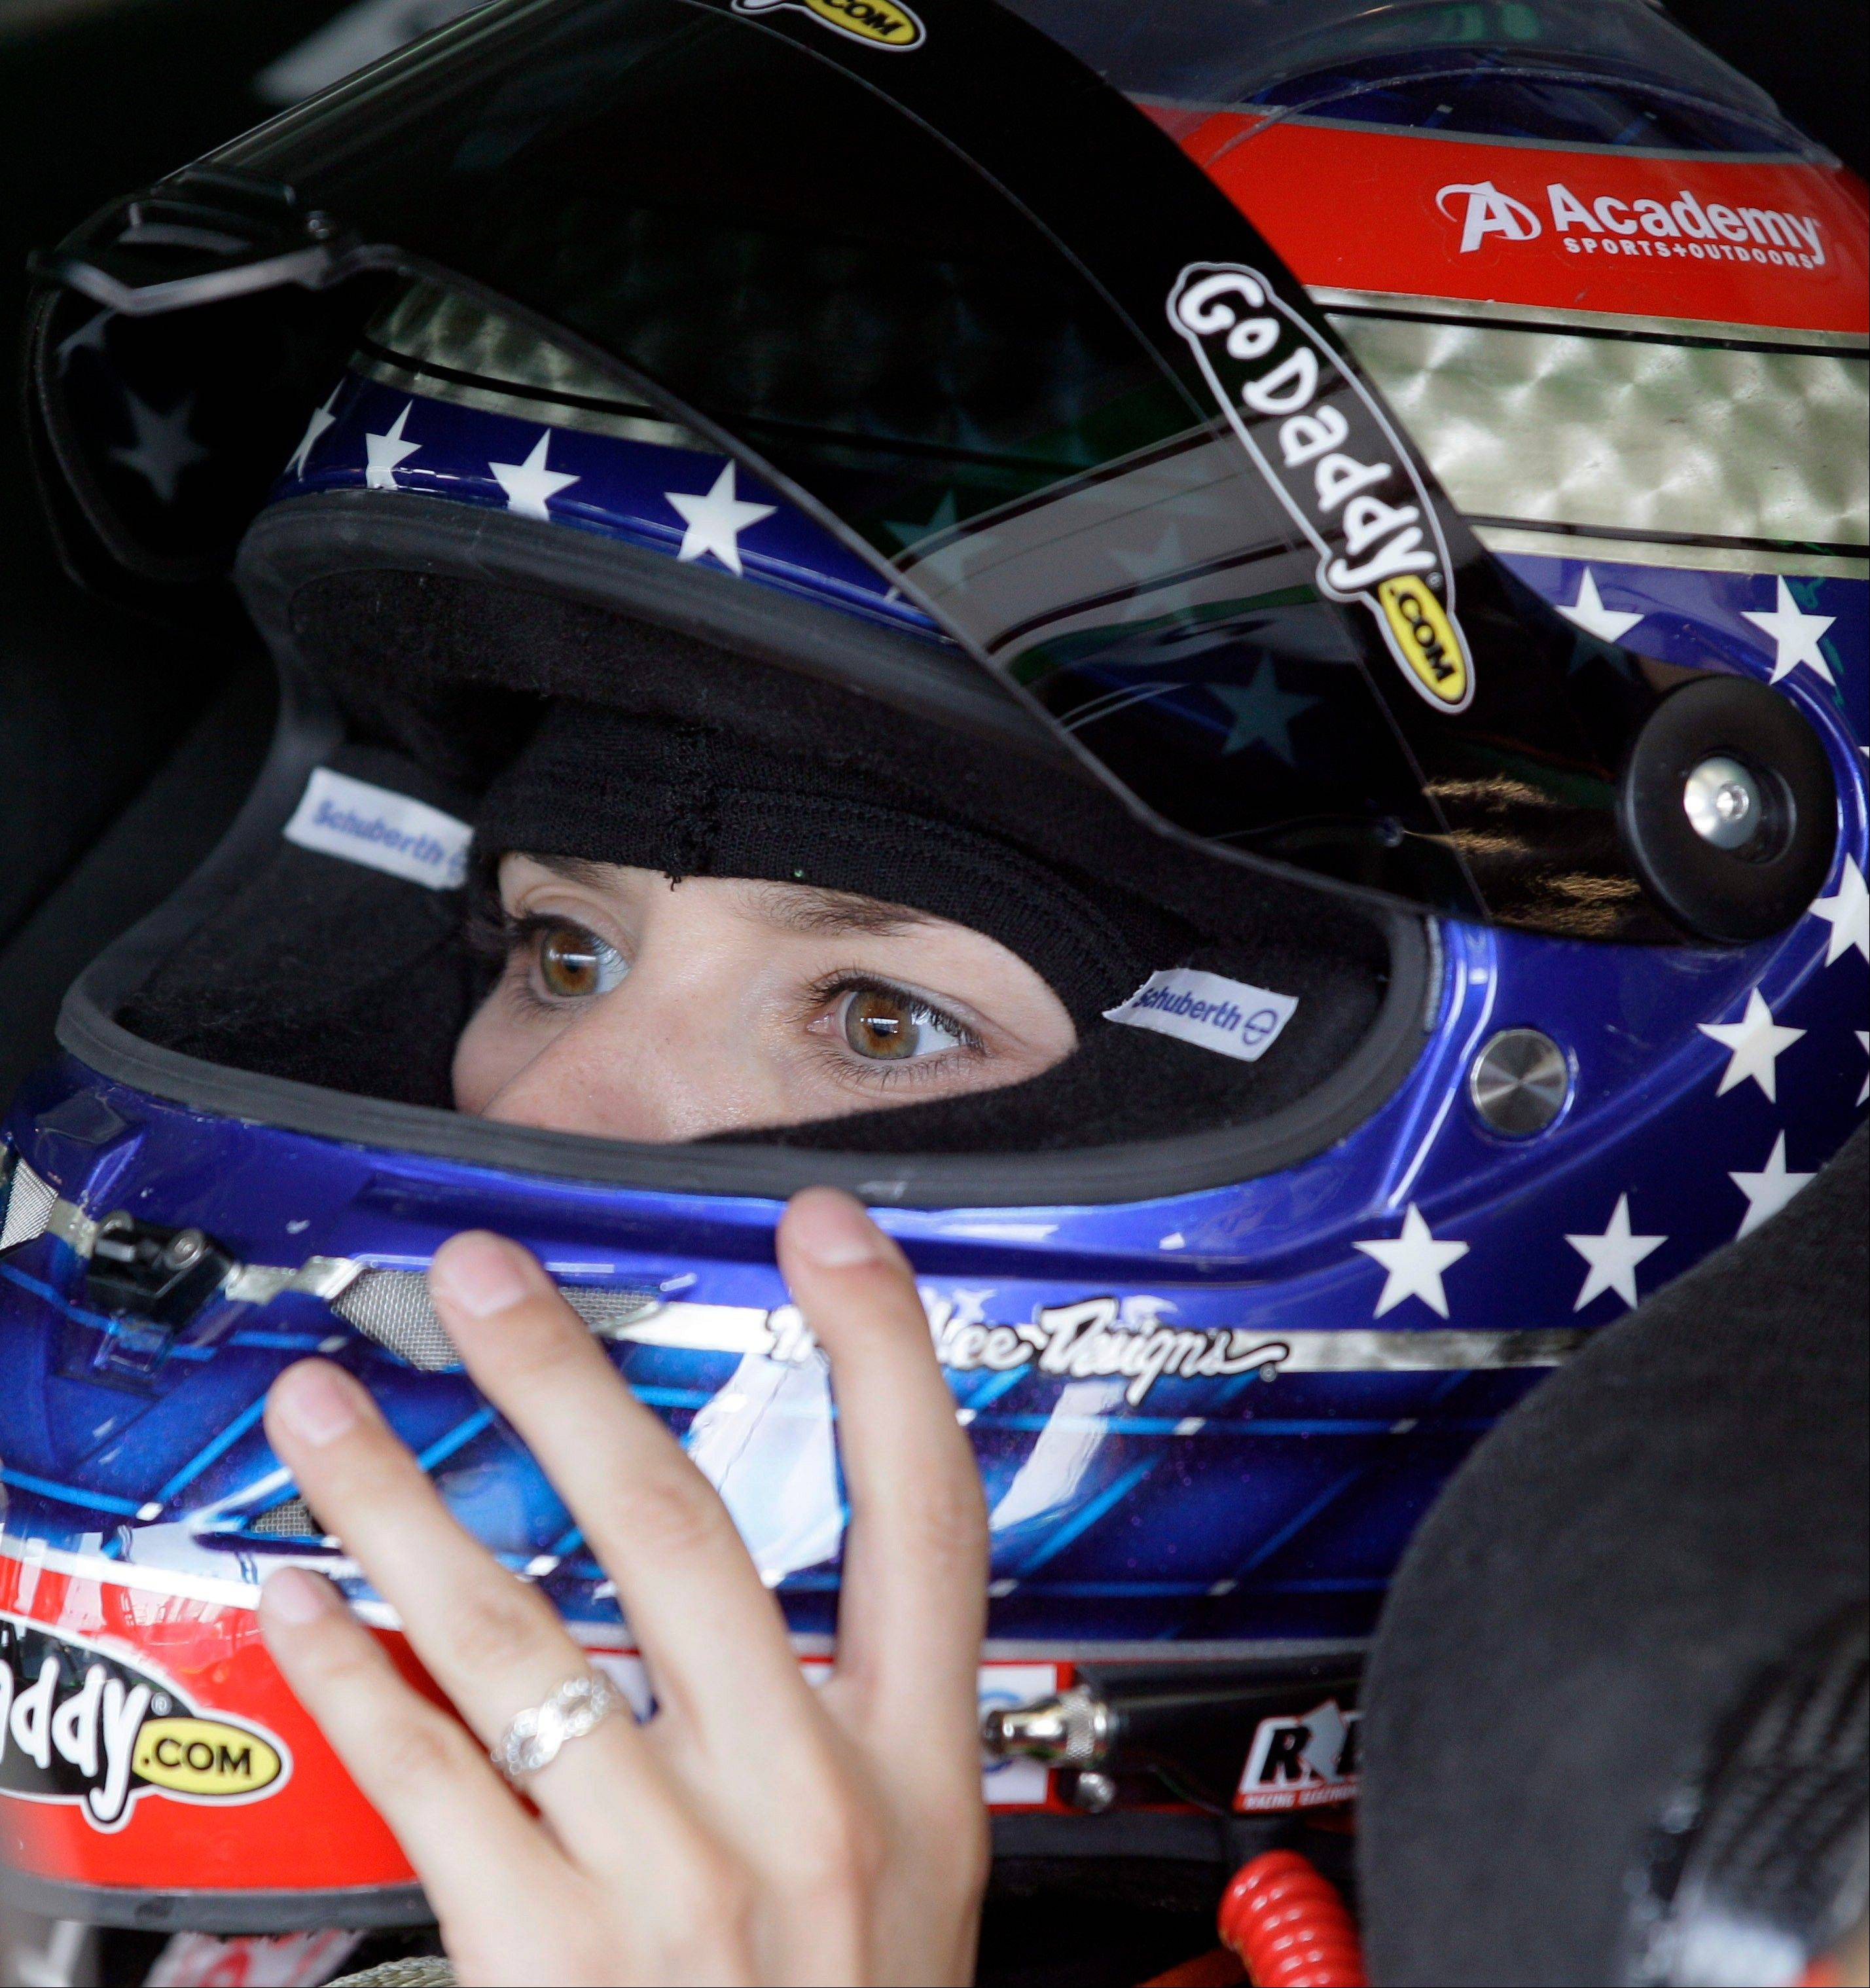 Danica Patrick checks her helmet during practice Friday for the NASCAR Sprint Cup Series auto race at Chicagoland Speedway in Joliet.